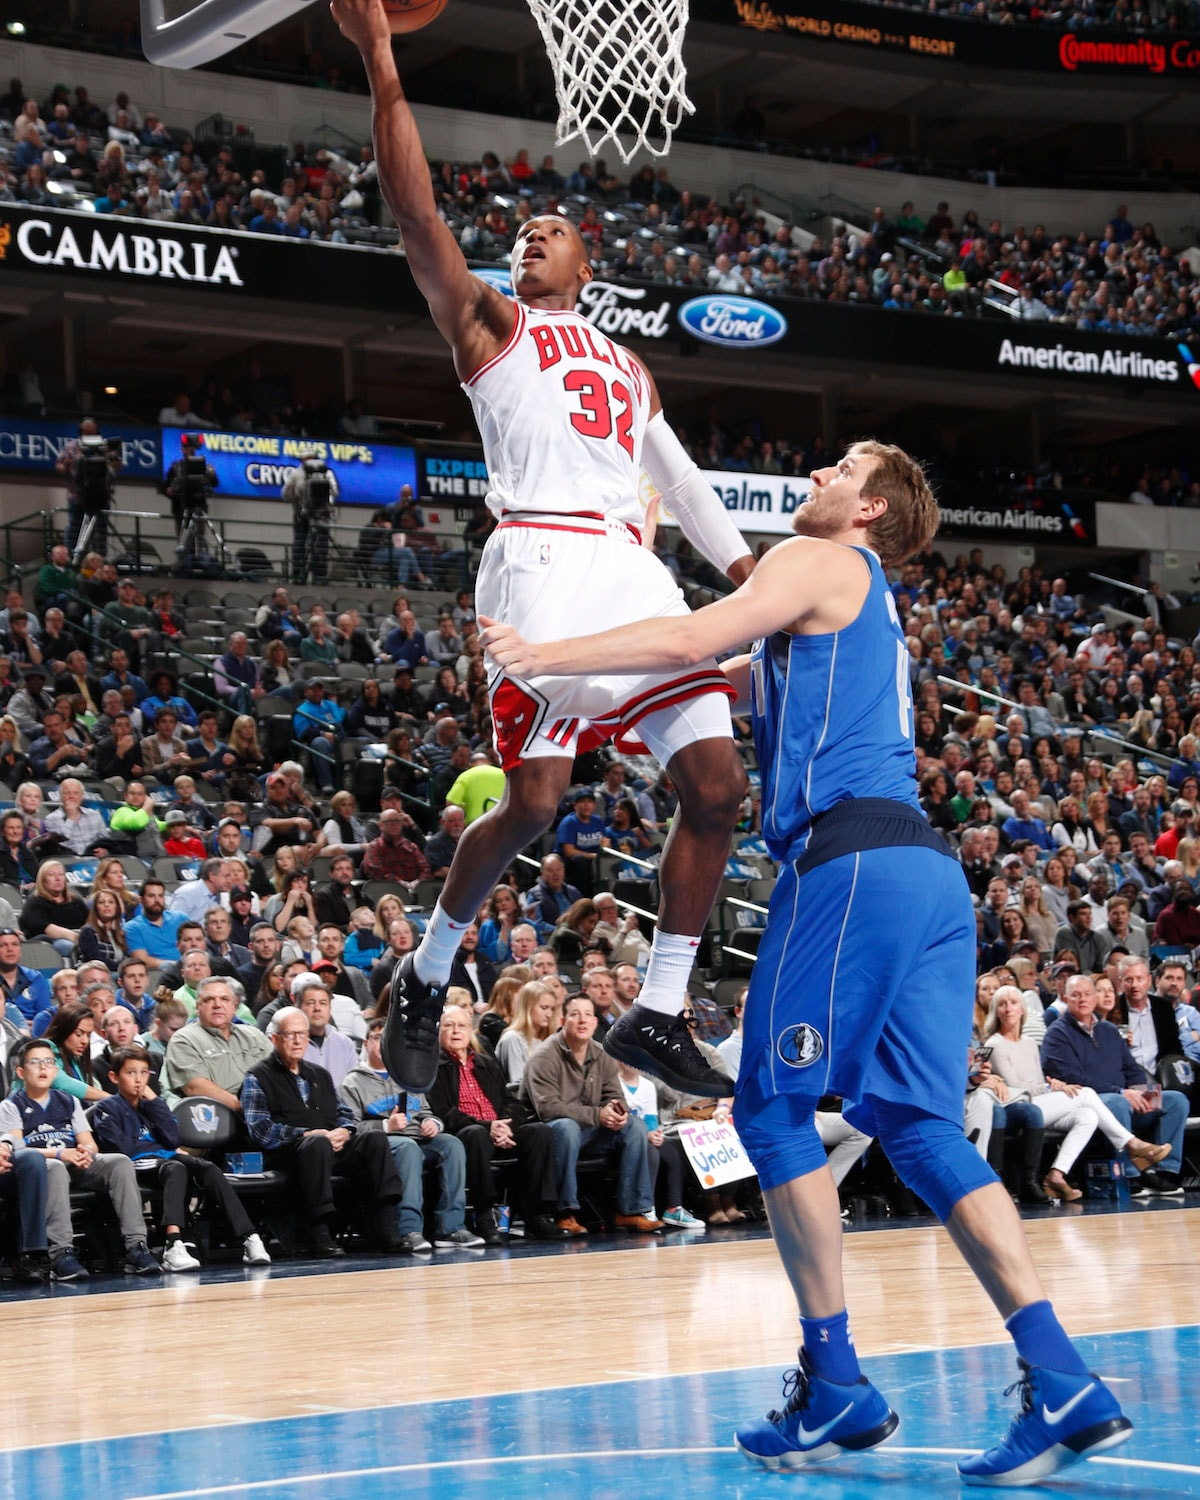 Kris Dunn #32 of the Chicago Bulls shoots a lay up against Dirk Nowitzki #41 of the Dallas Mavericks